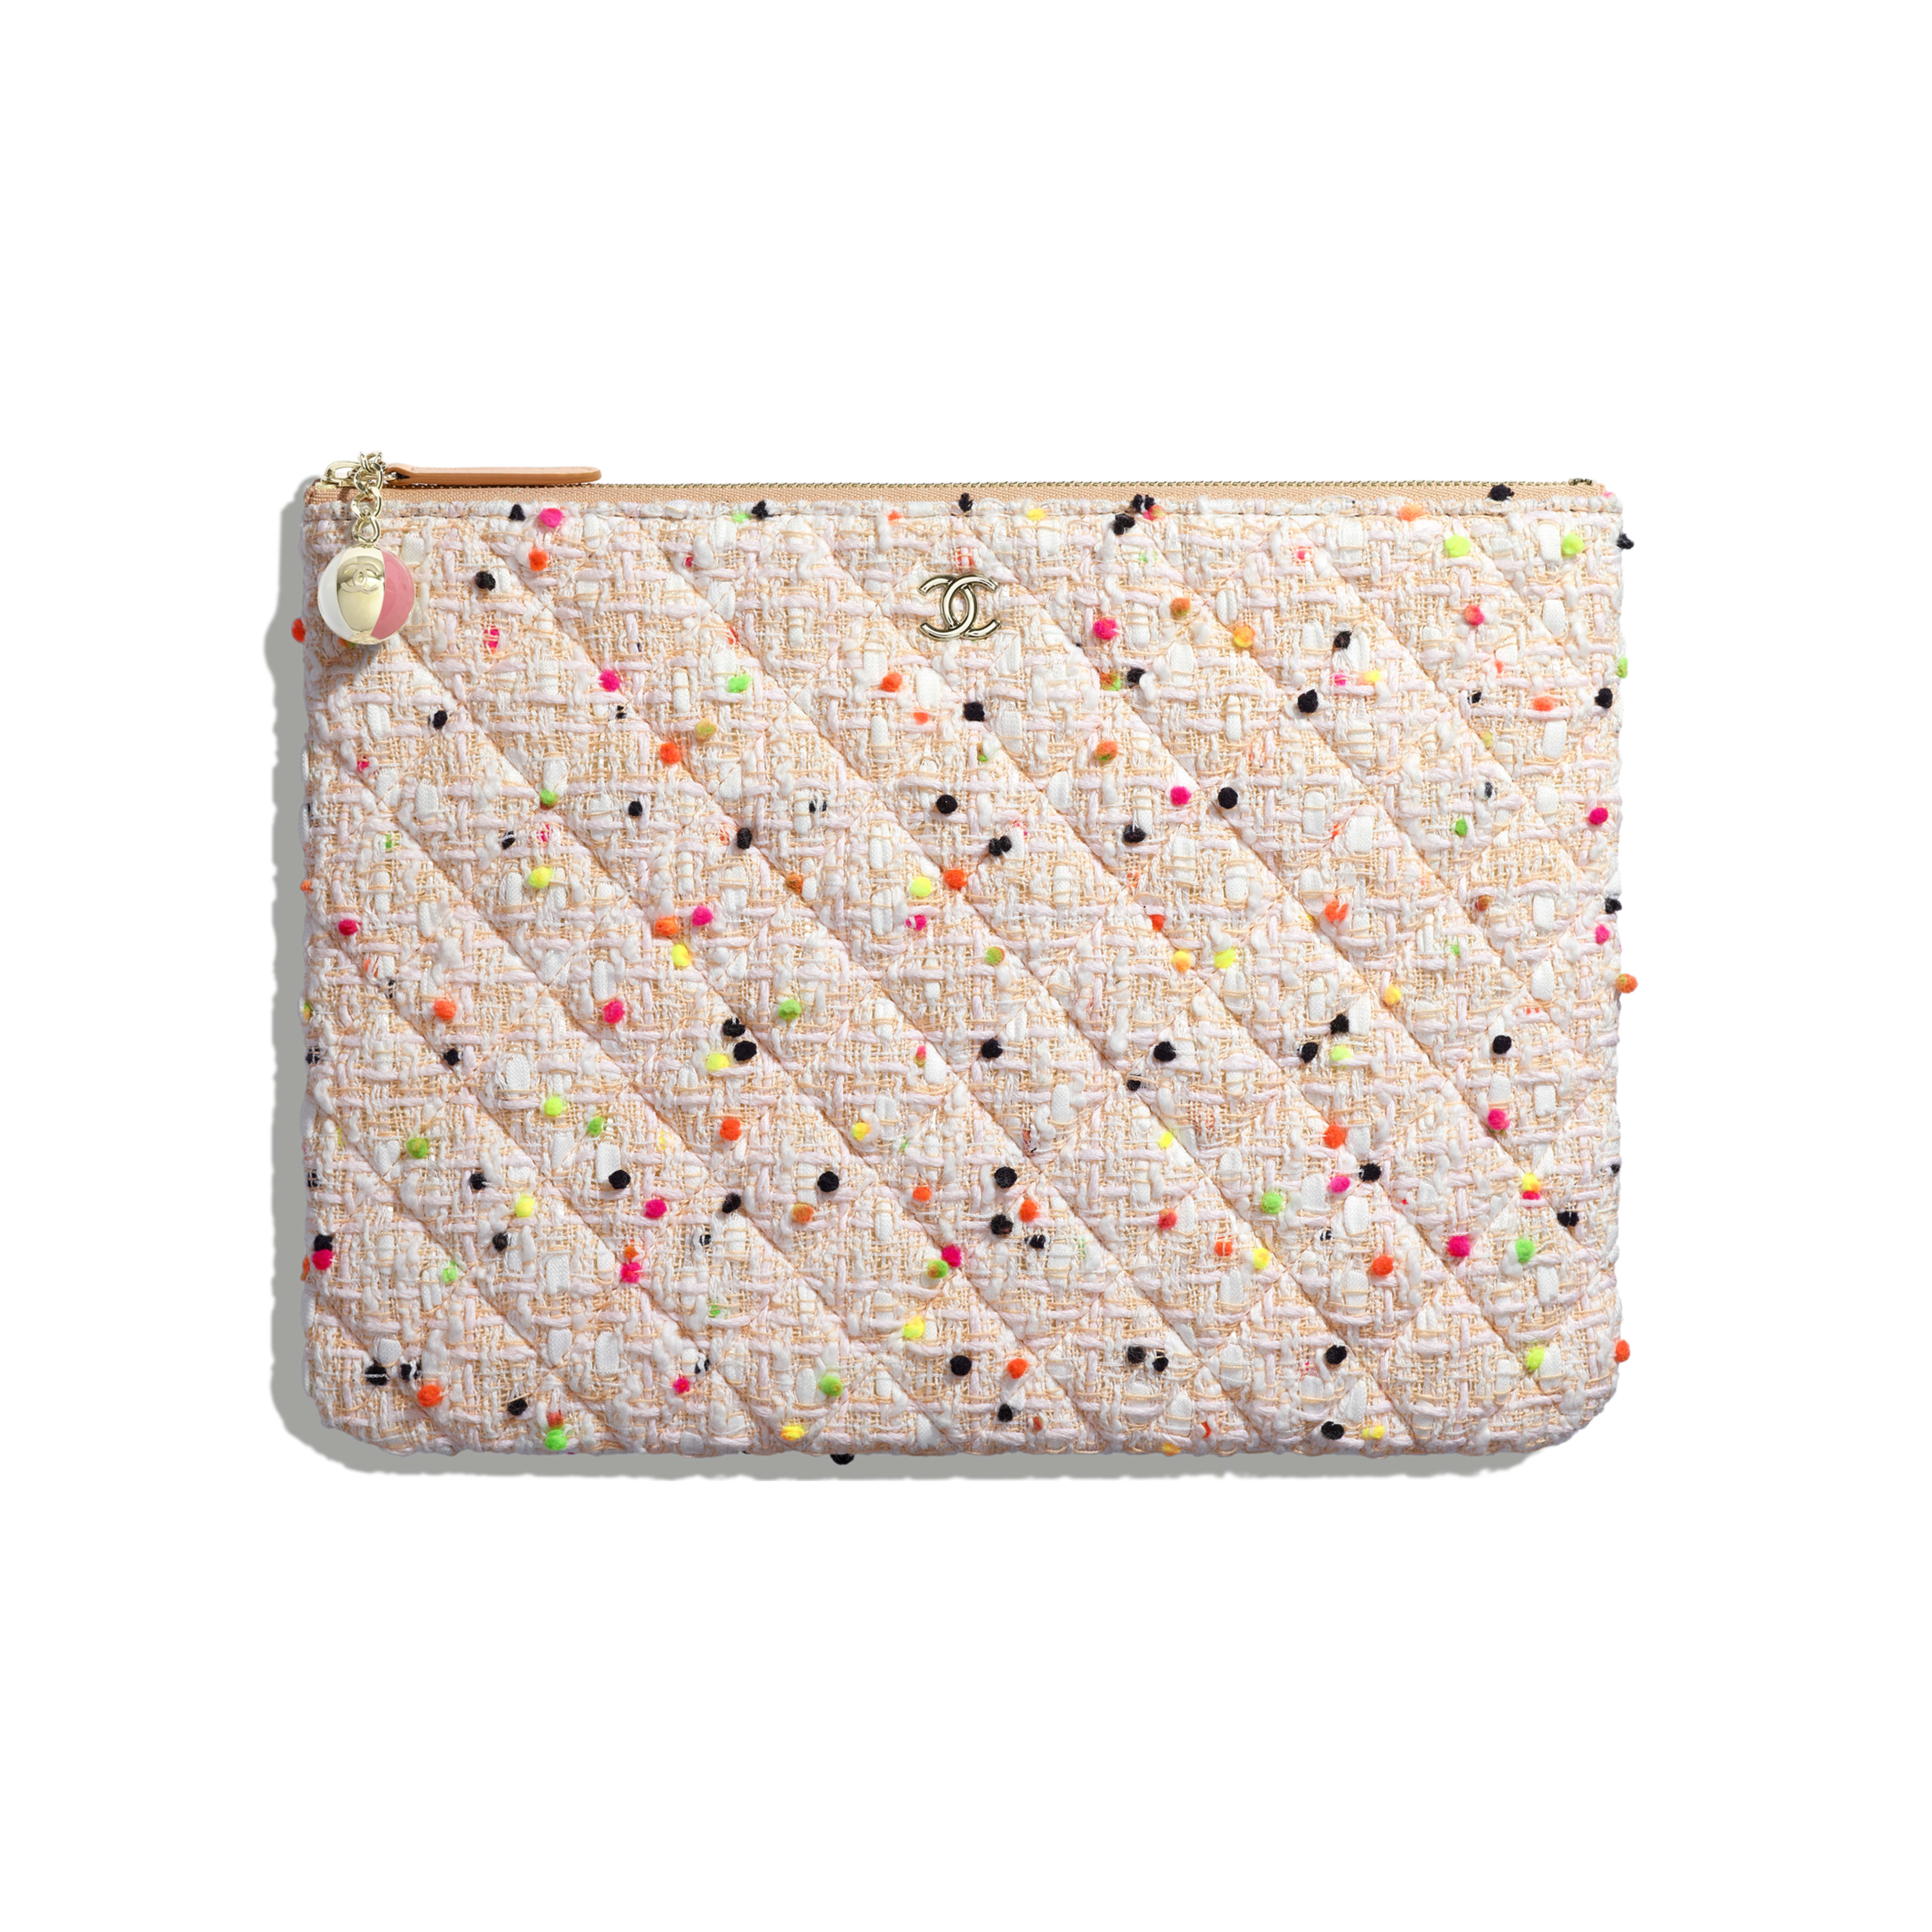 Classic Pouch - Coral & White - Cotton Tweed & Gold-Tone Metal - Default view - see full sized version